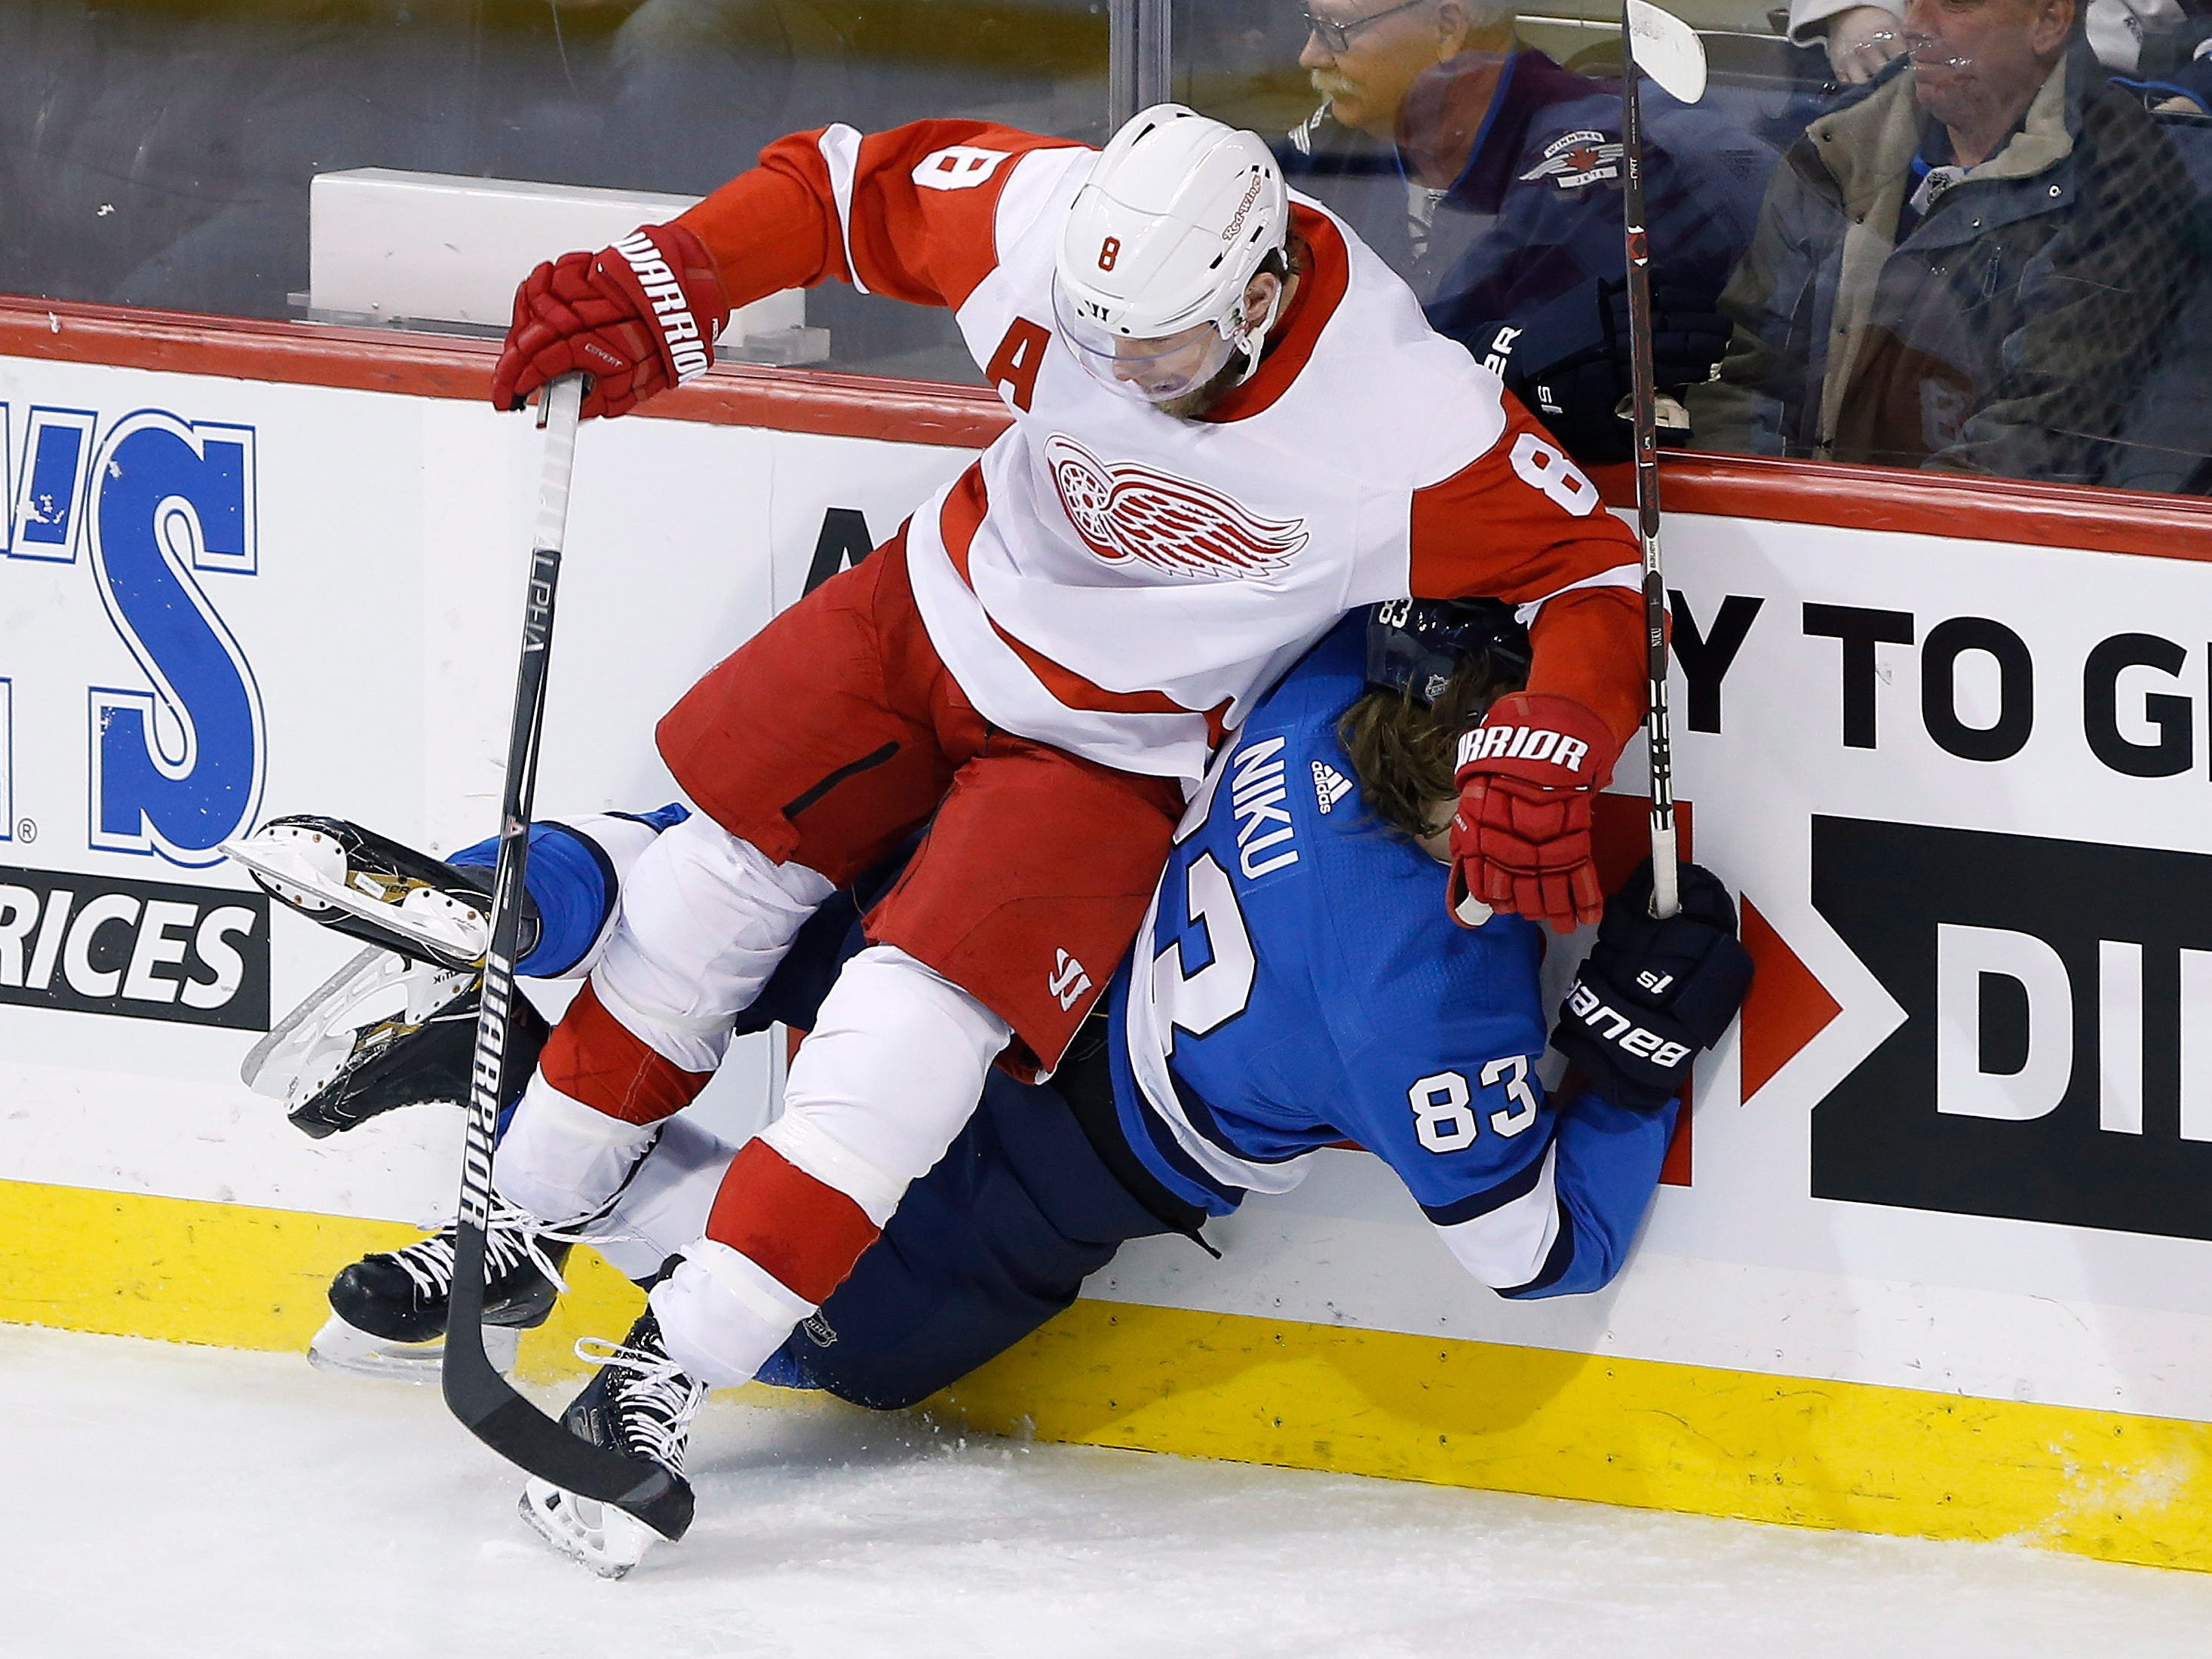 Winnipeg Jets' Sami Niku is checked by Detroit Red Wings' Justin Abdelkader during the first period Friday, Jan. 11, 2019, in Winnipeg, Manitoba.